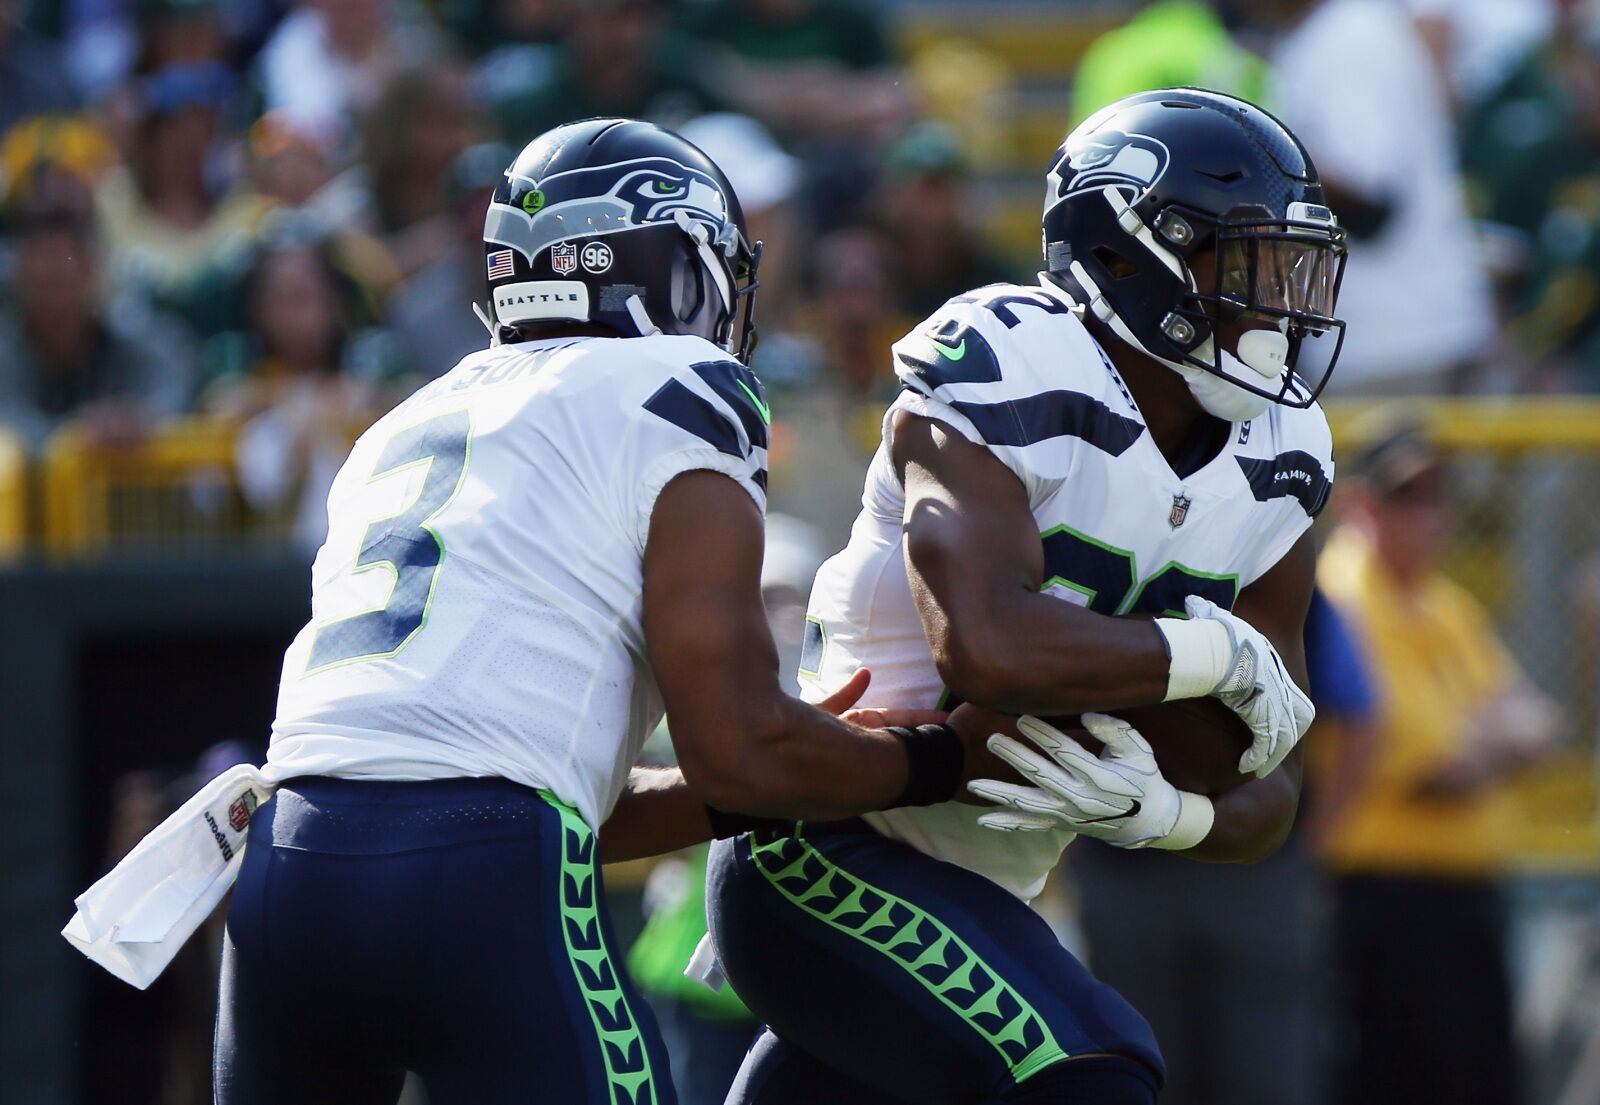 Seattle Seahawks: What Should Seattle Do With C.J. Prosise?